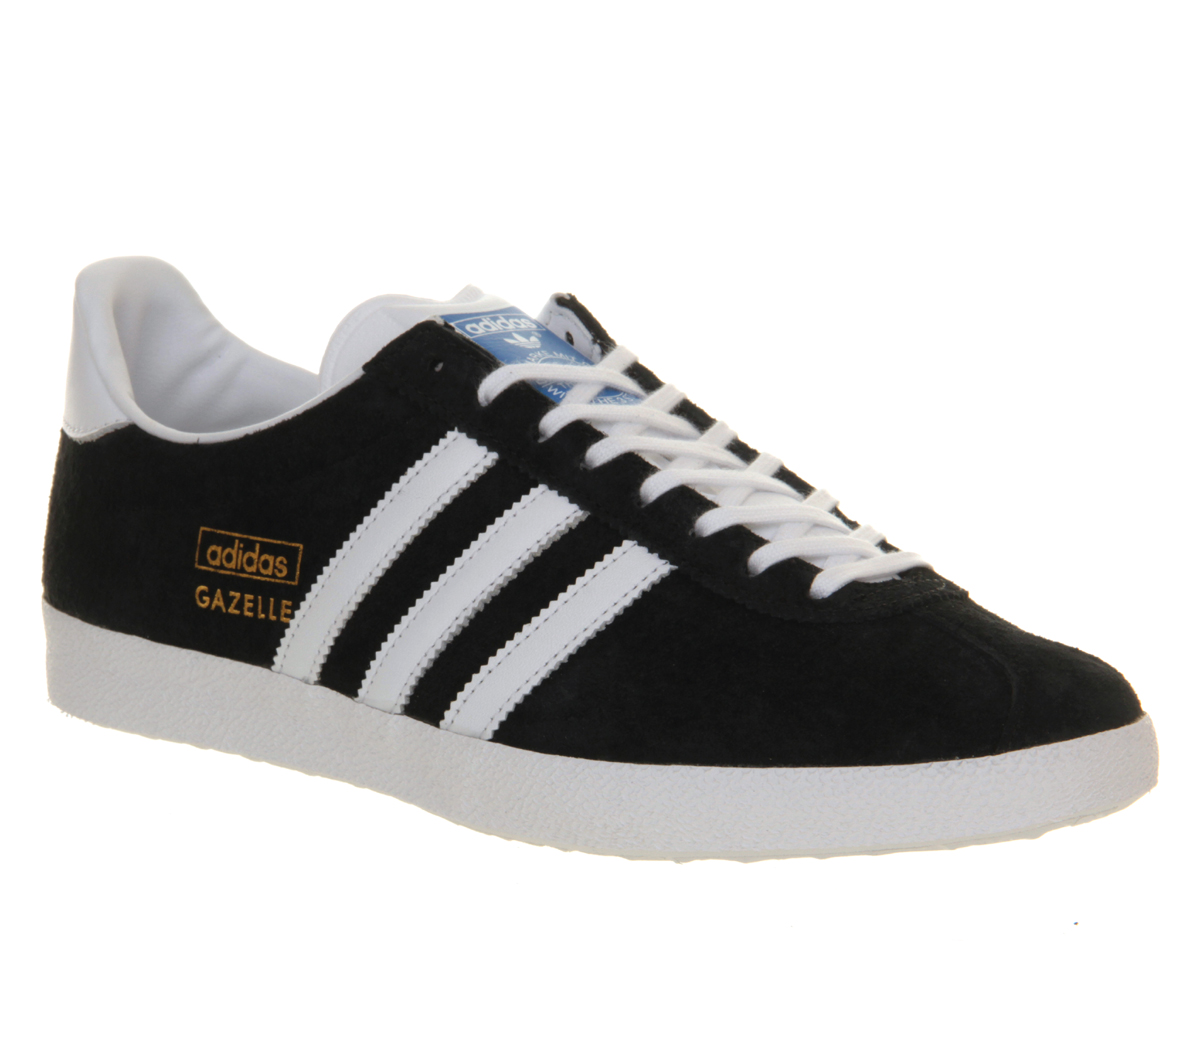 Adidas Gazelle Black White Ebay